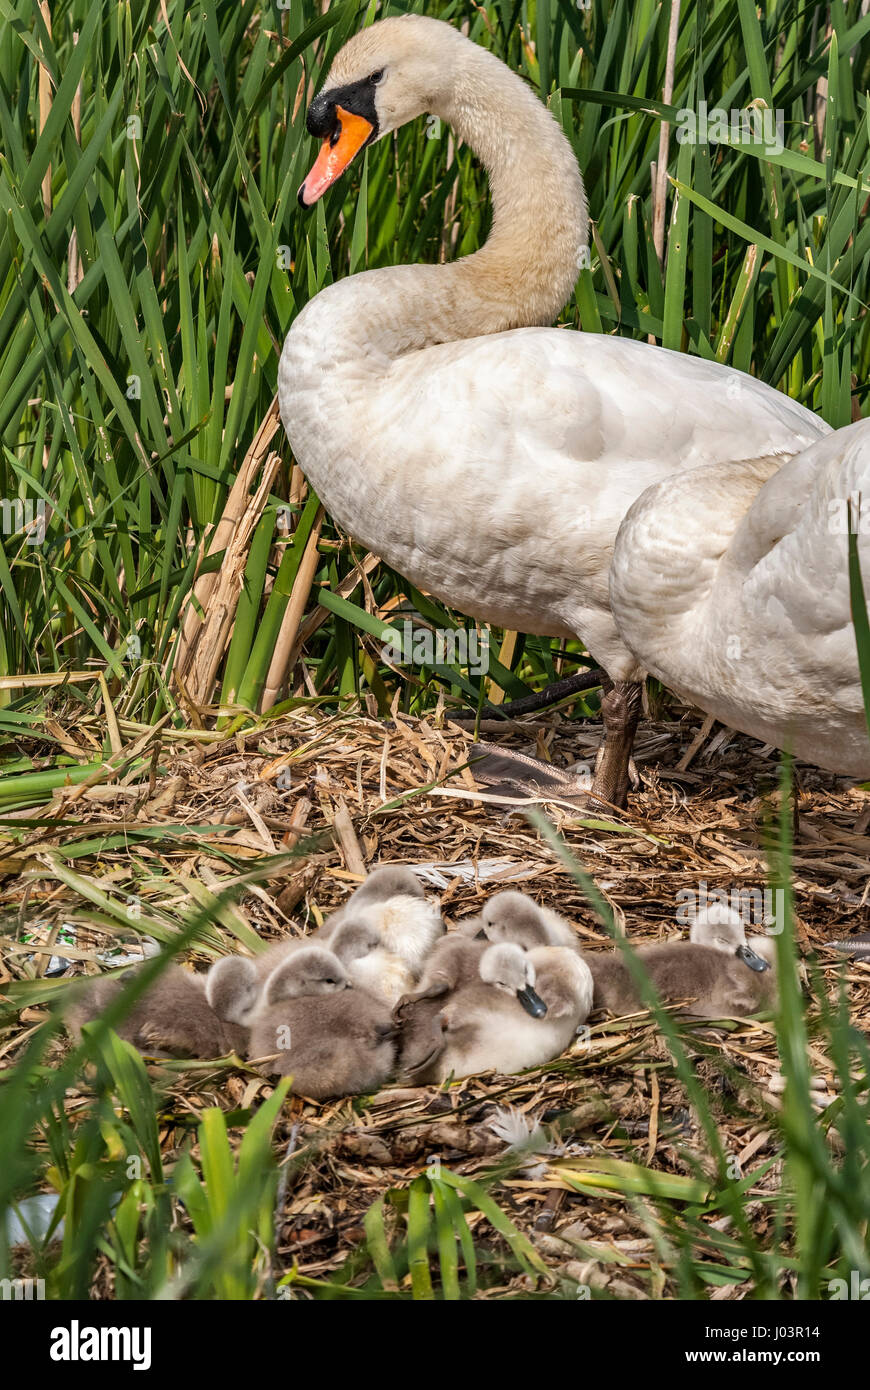 Swan with cygnets on nest. - Stock Image